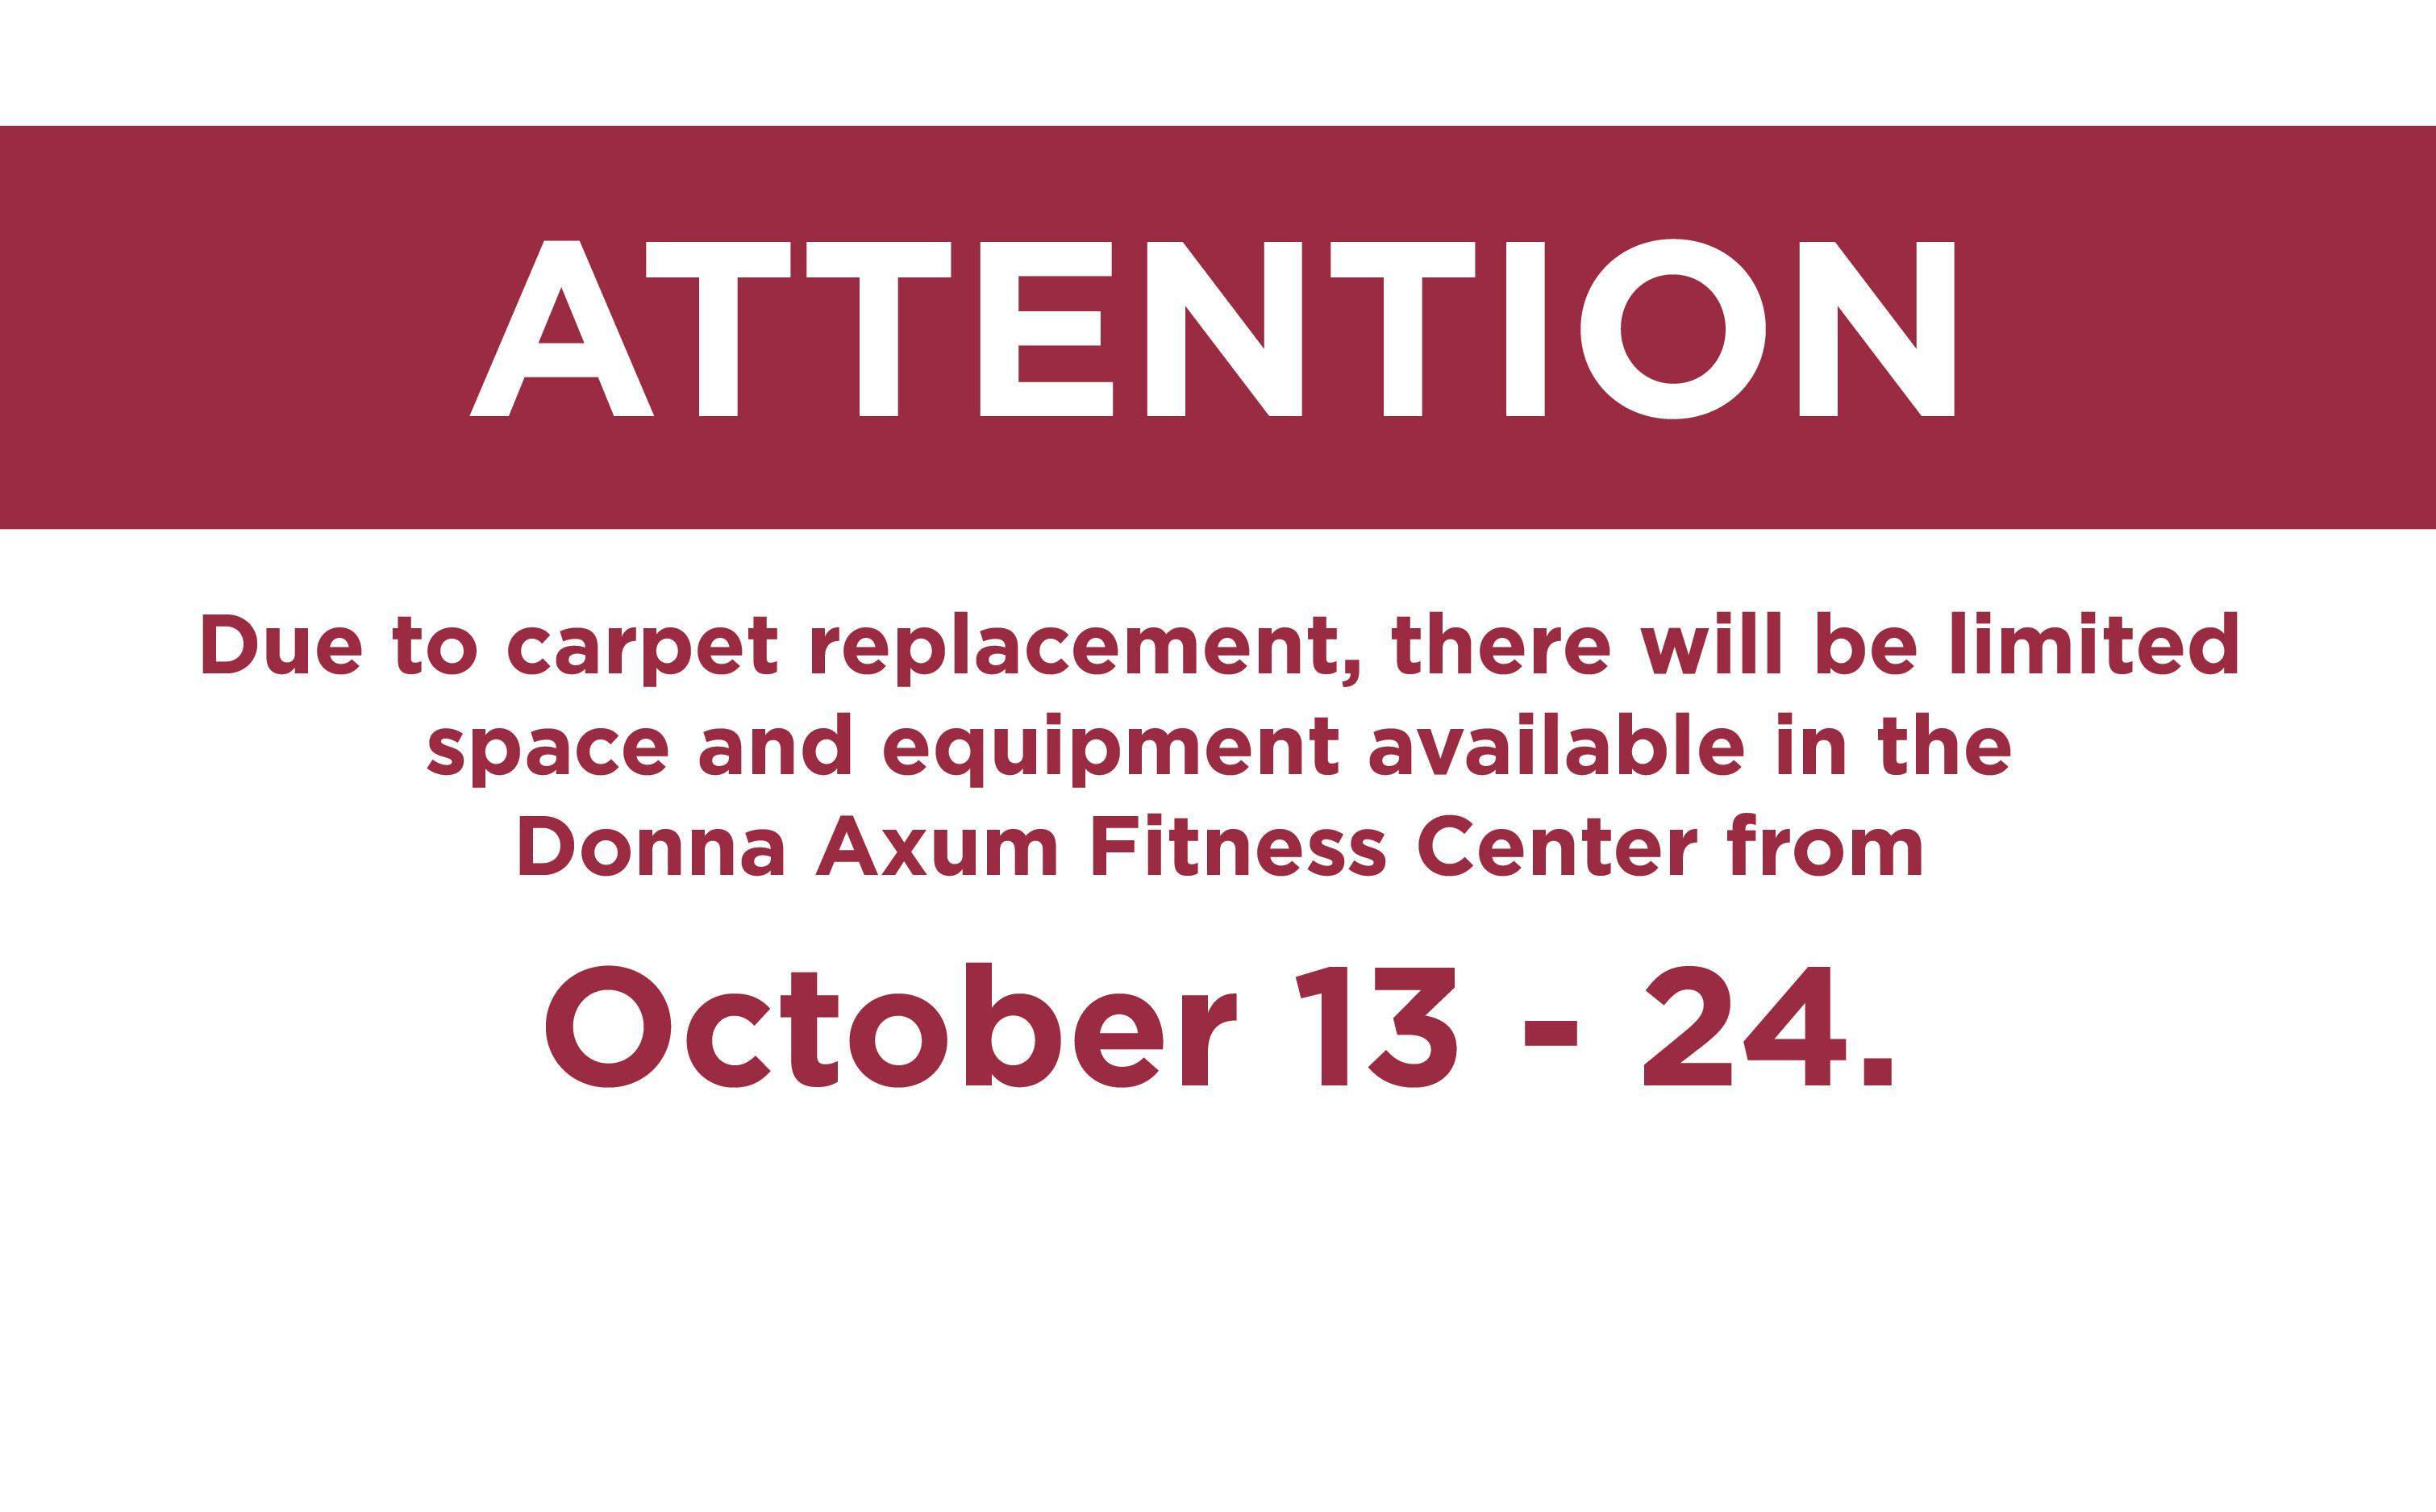 The UREC Fitness Center in the AR Union will still be open during this time.